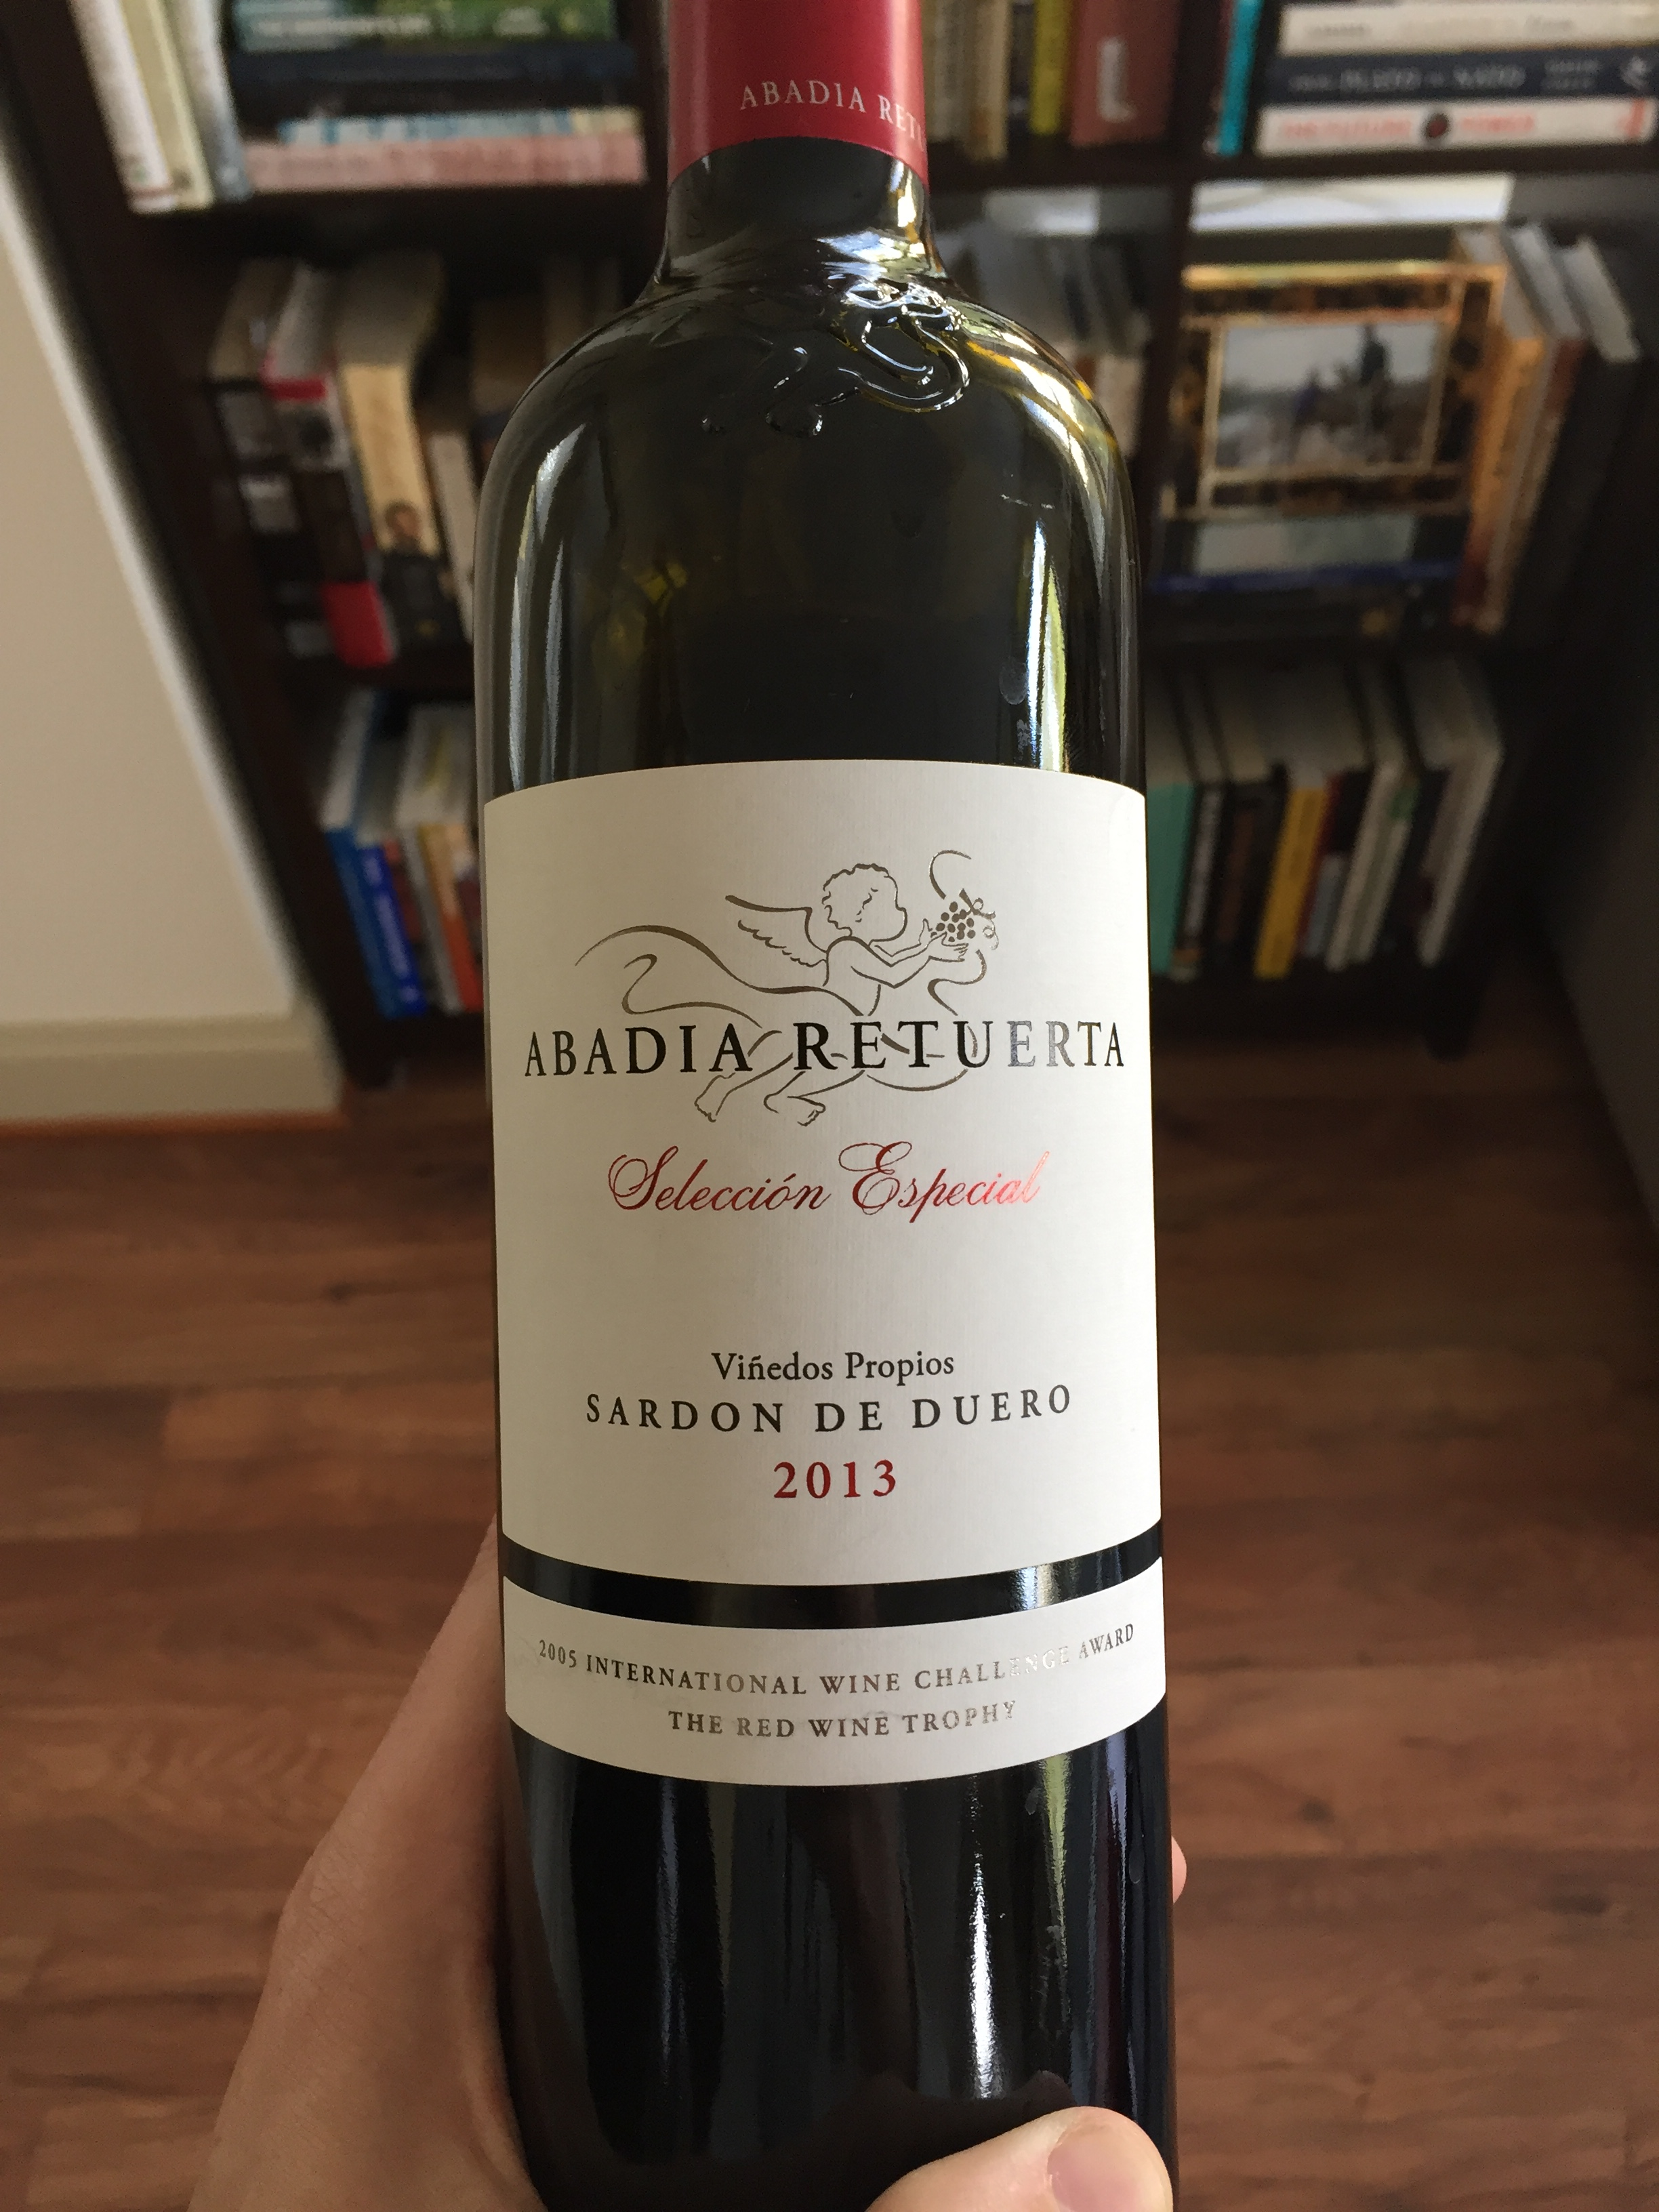 The 2013, which I tasted, is three-quarters tempranillo, and is filled out  with 15% cabernet sauvignon and 10% syrah. I sampled it over the course of  ...